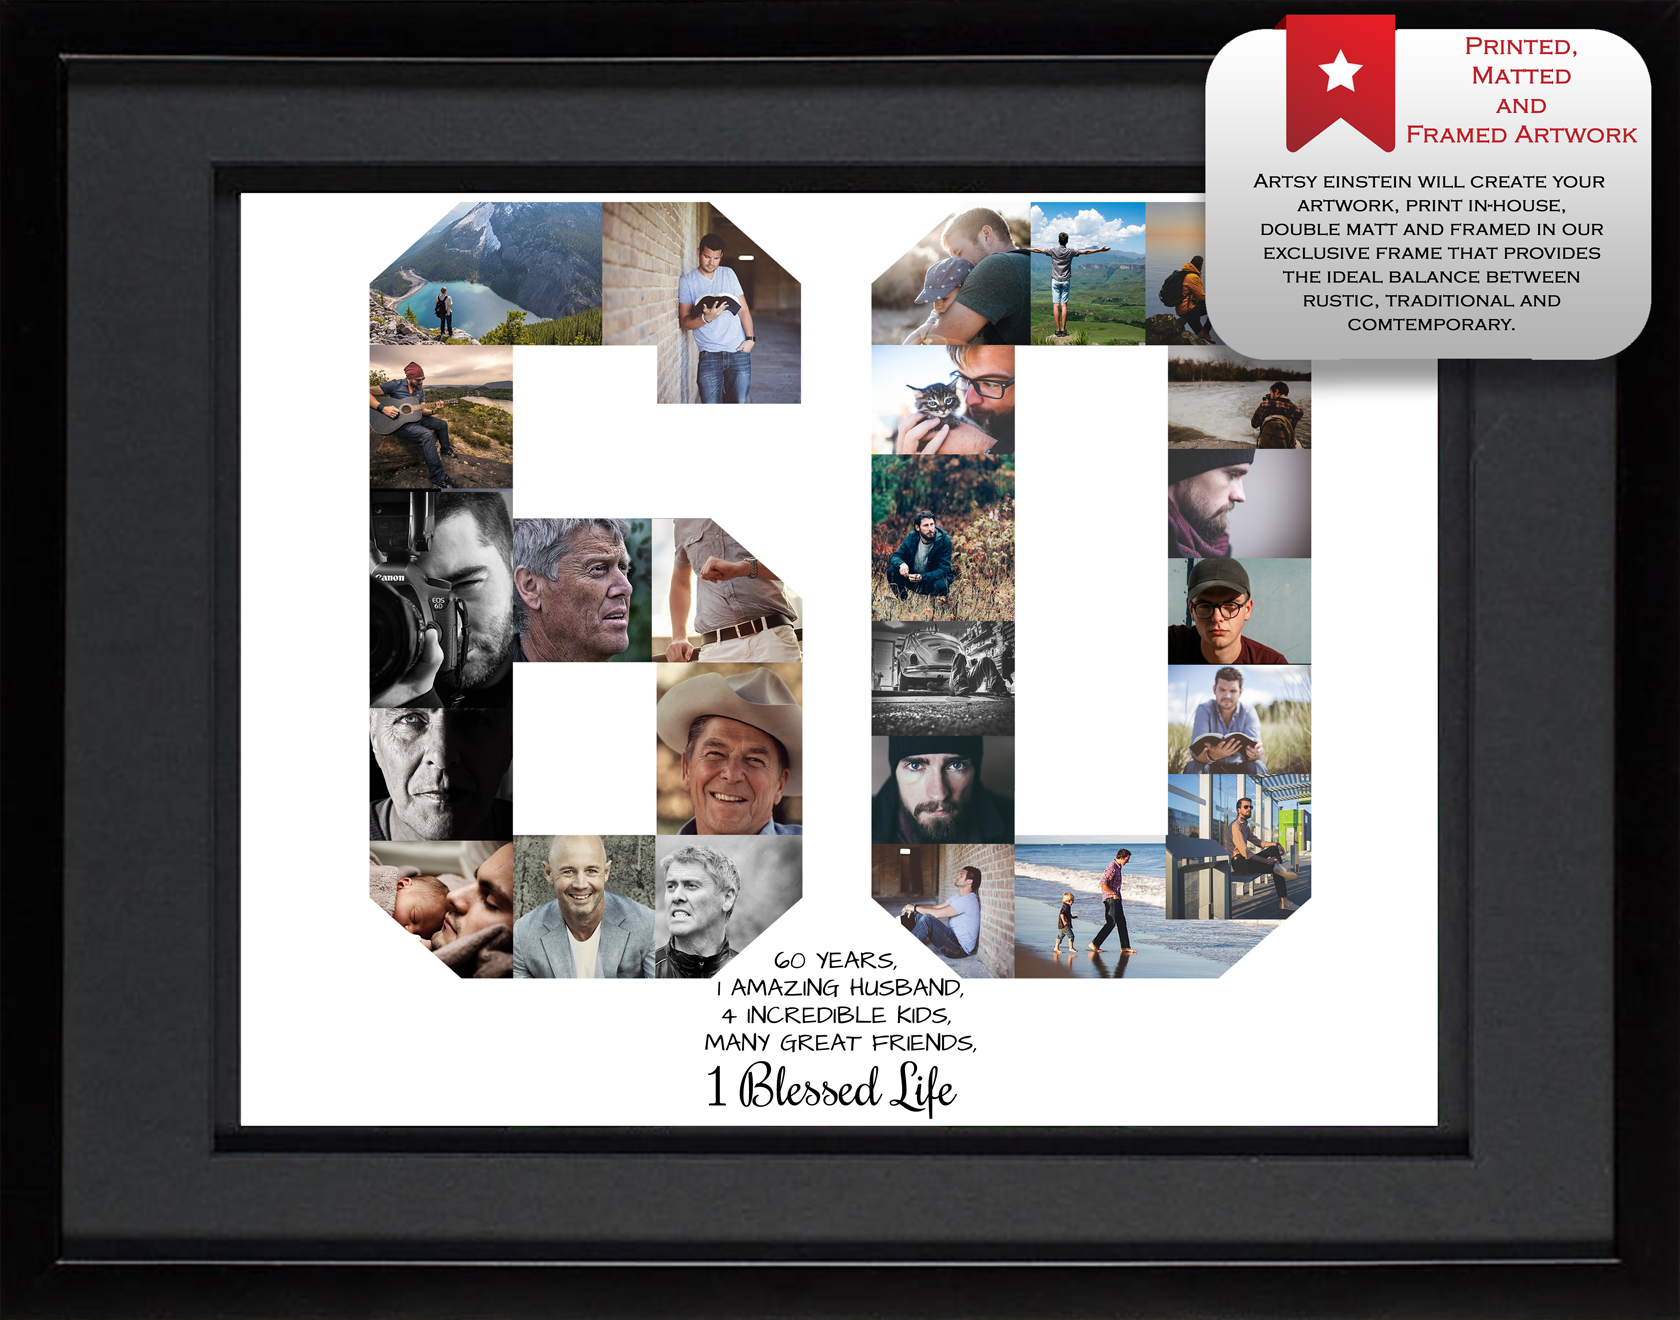 60th birthday photo collage premium hand crafted collage artsy